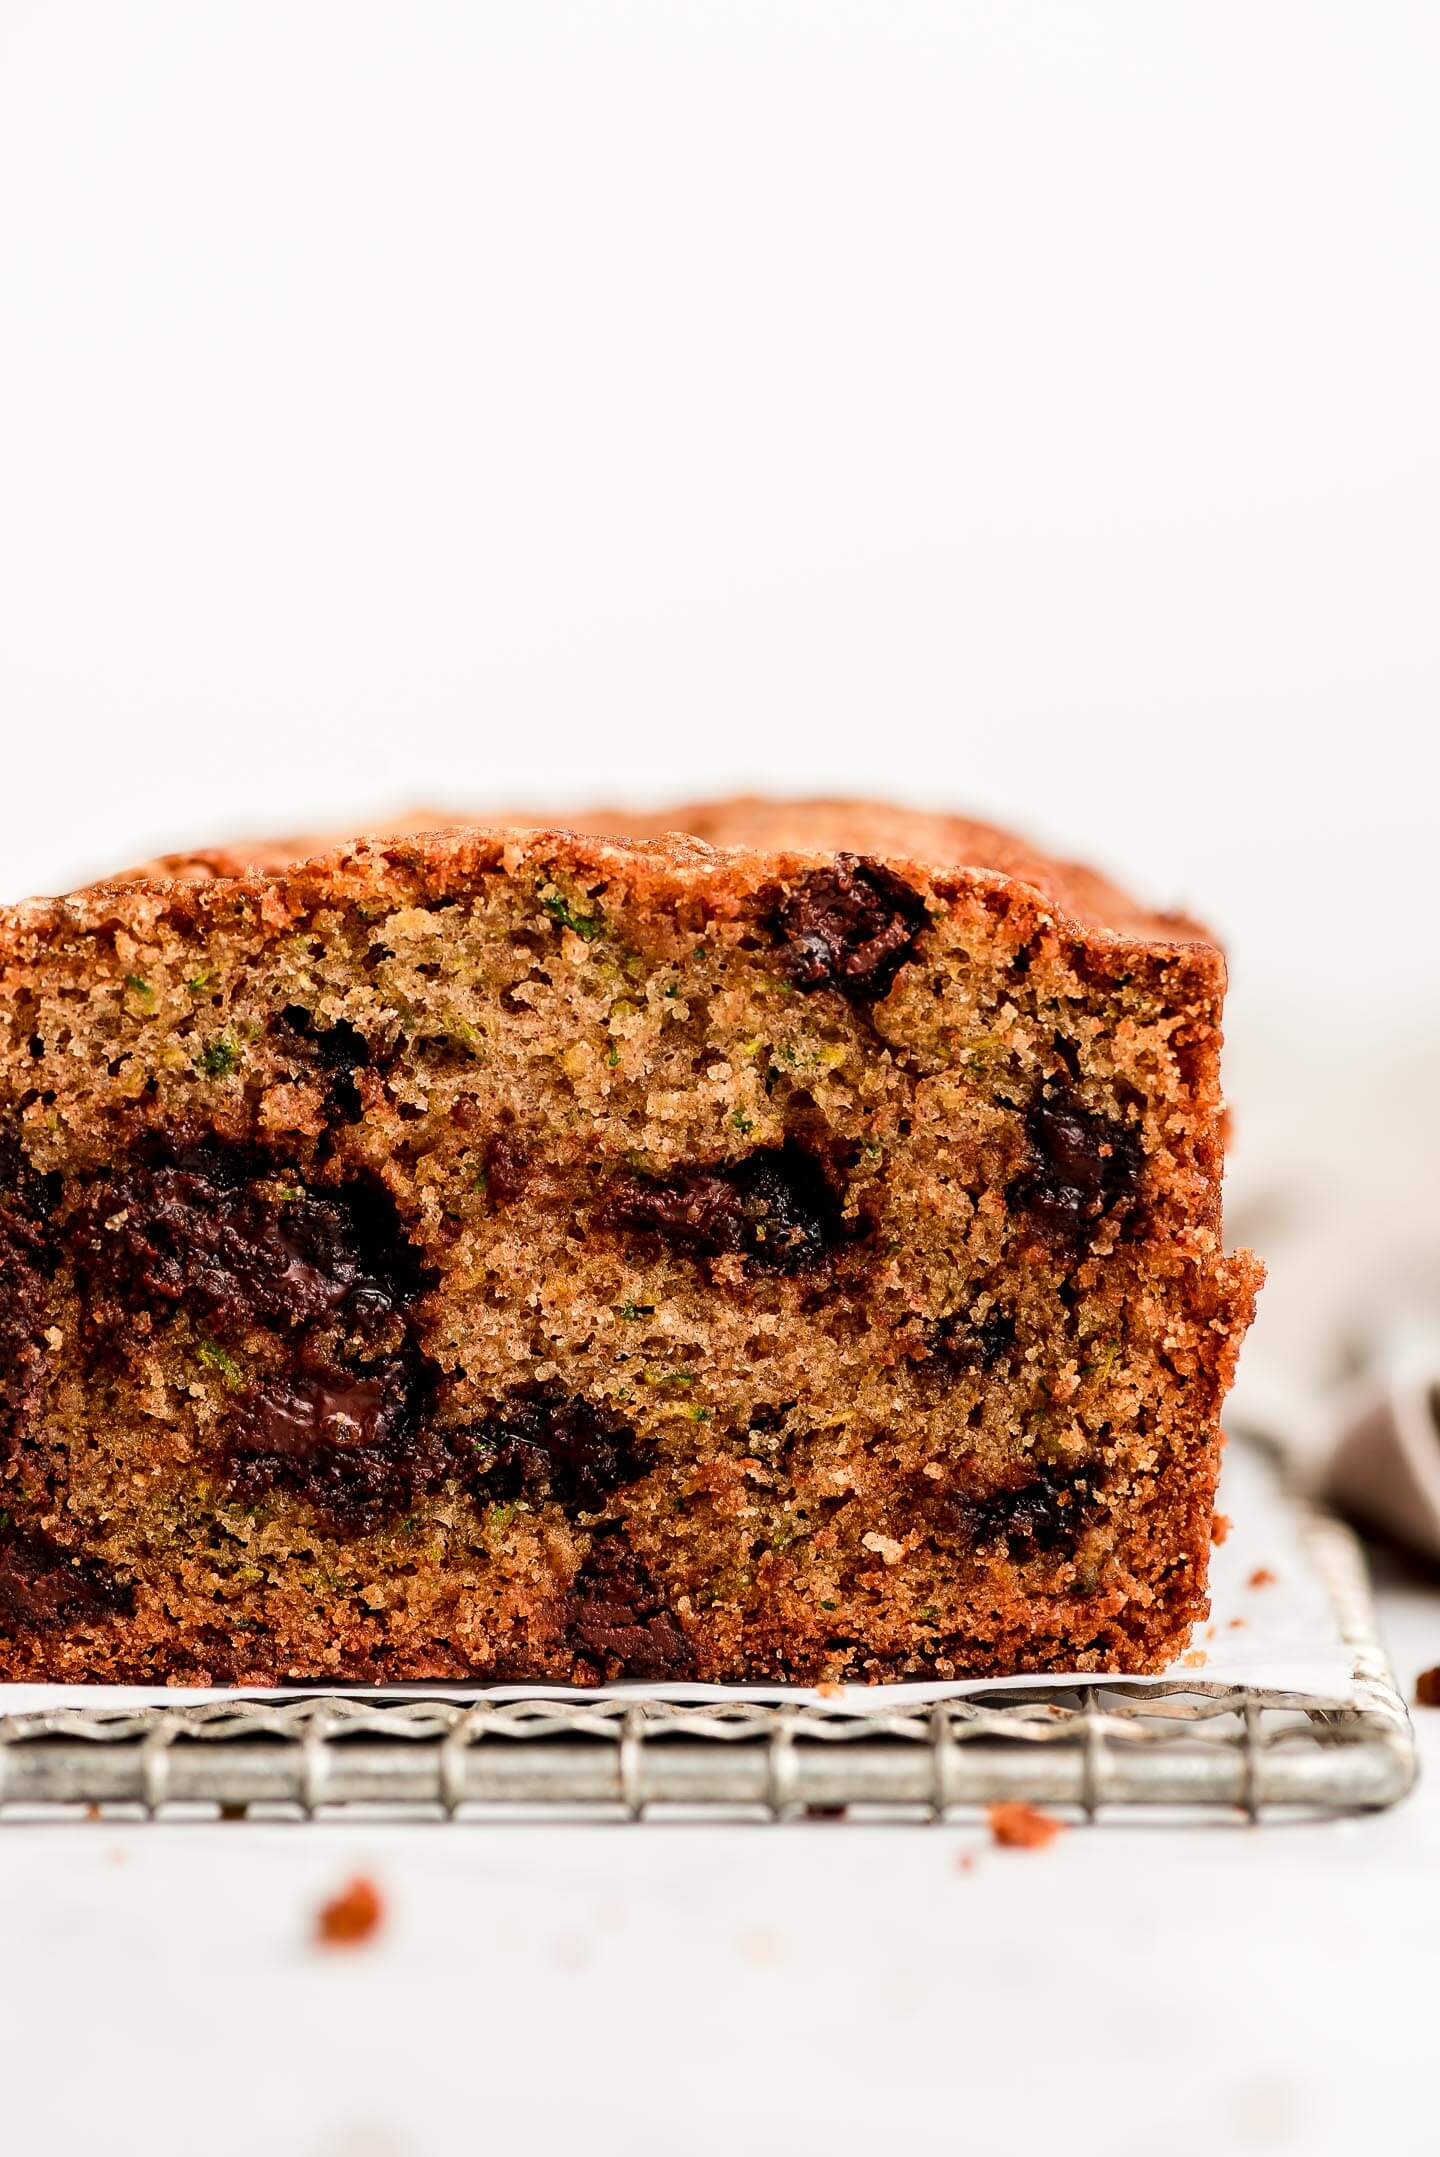 Cross section of zucchini bread studded with chocolate chips.